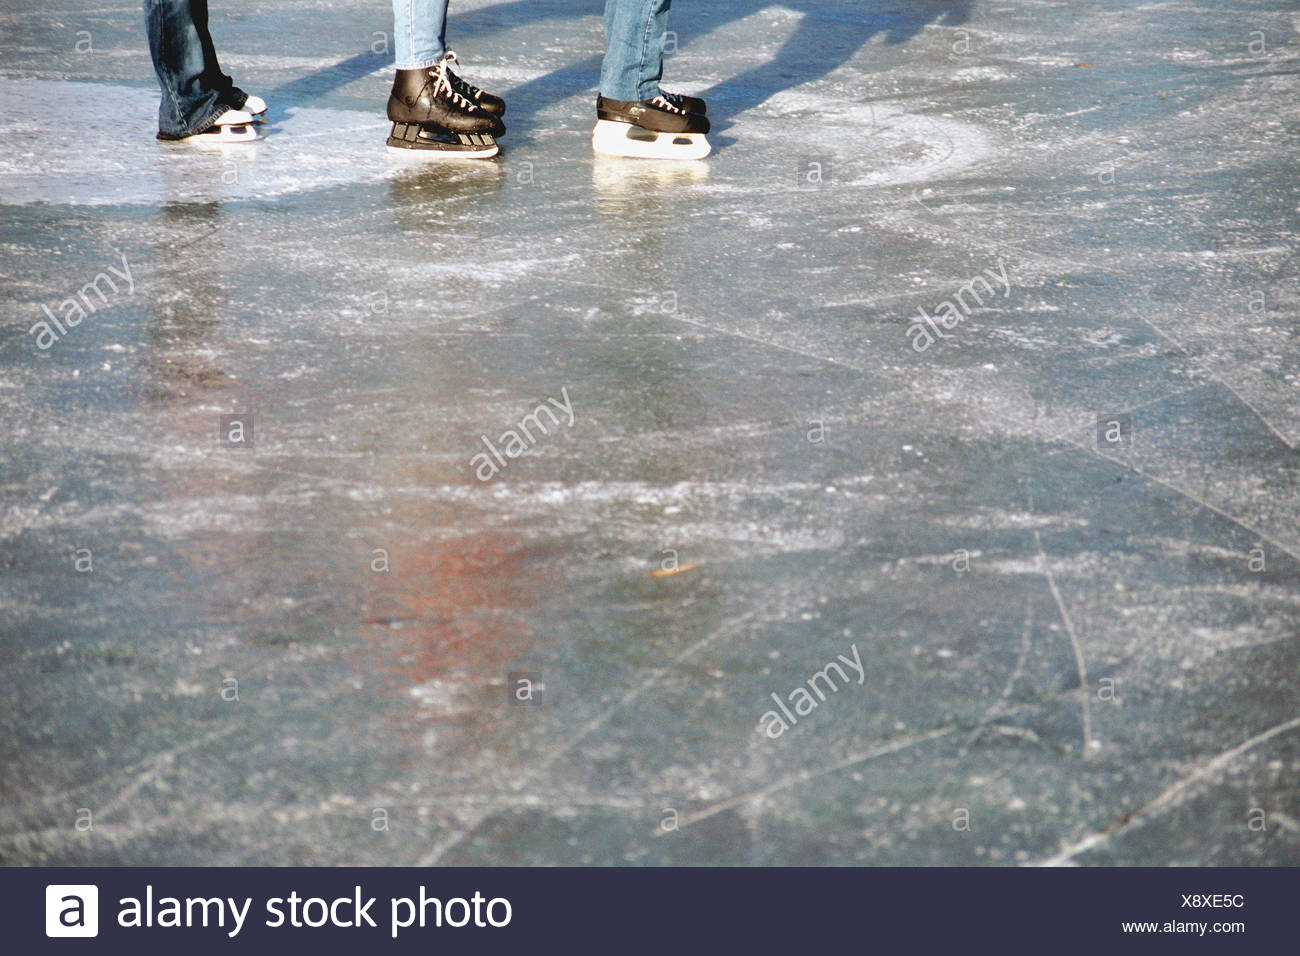 Ice skaters - Stock Image